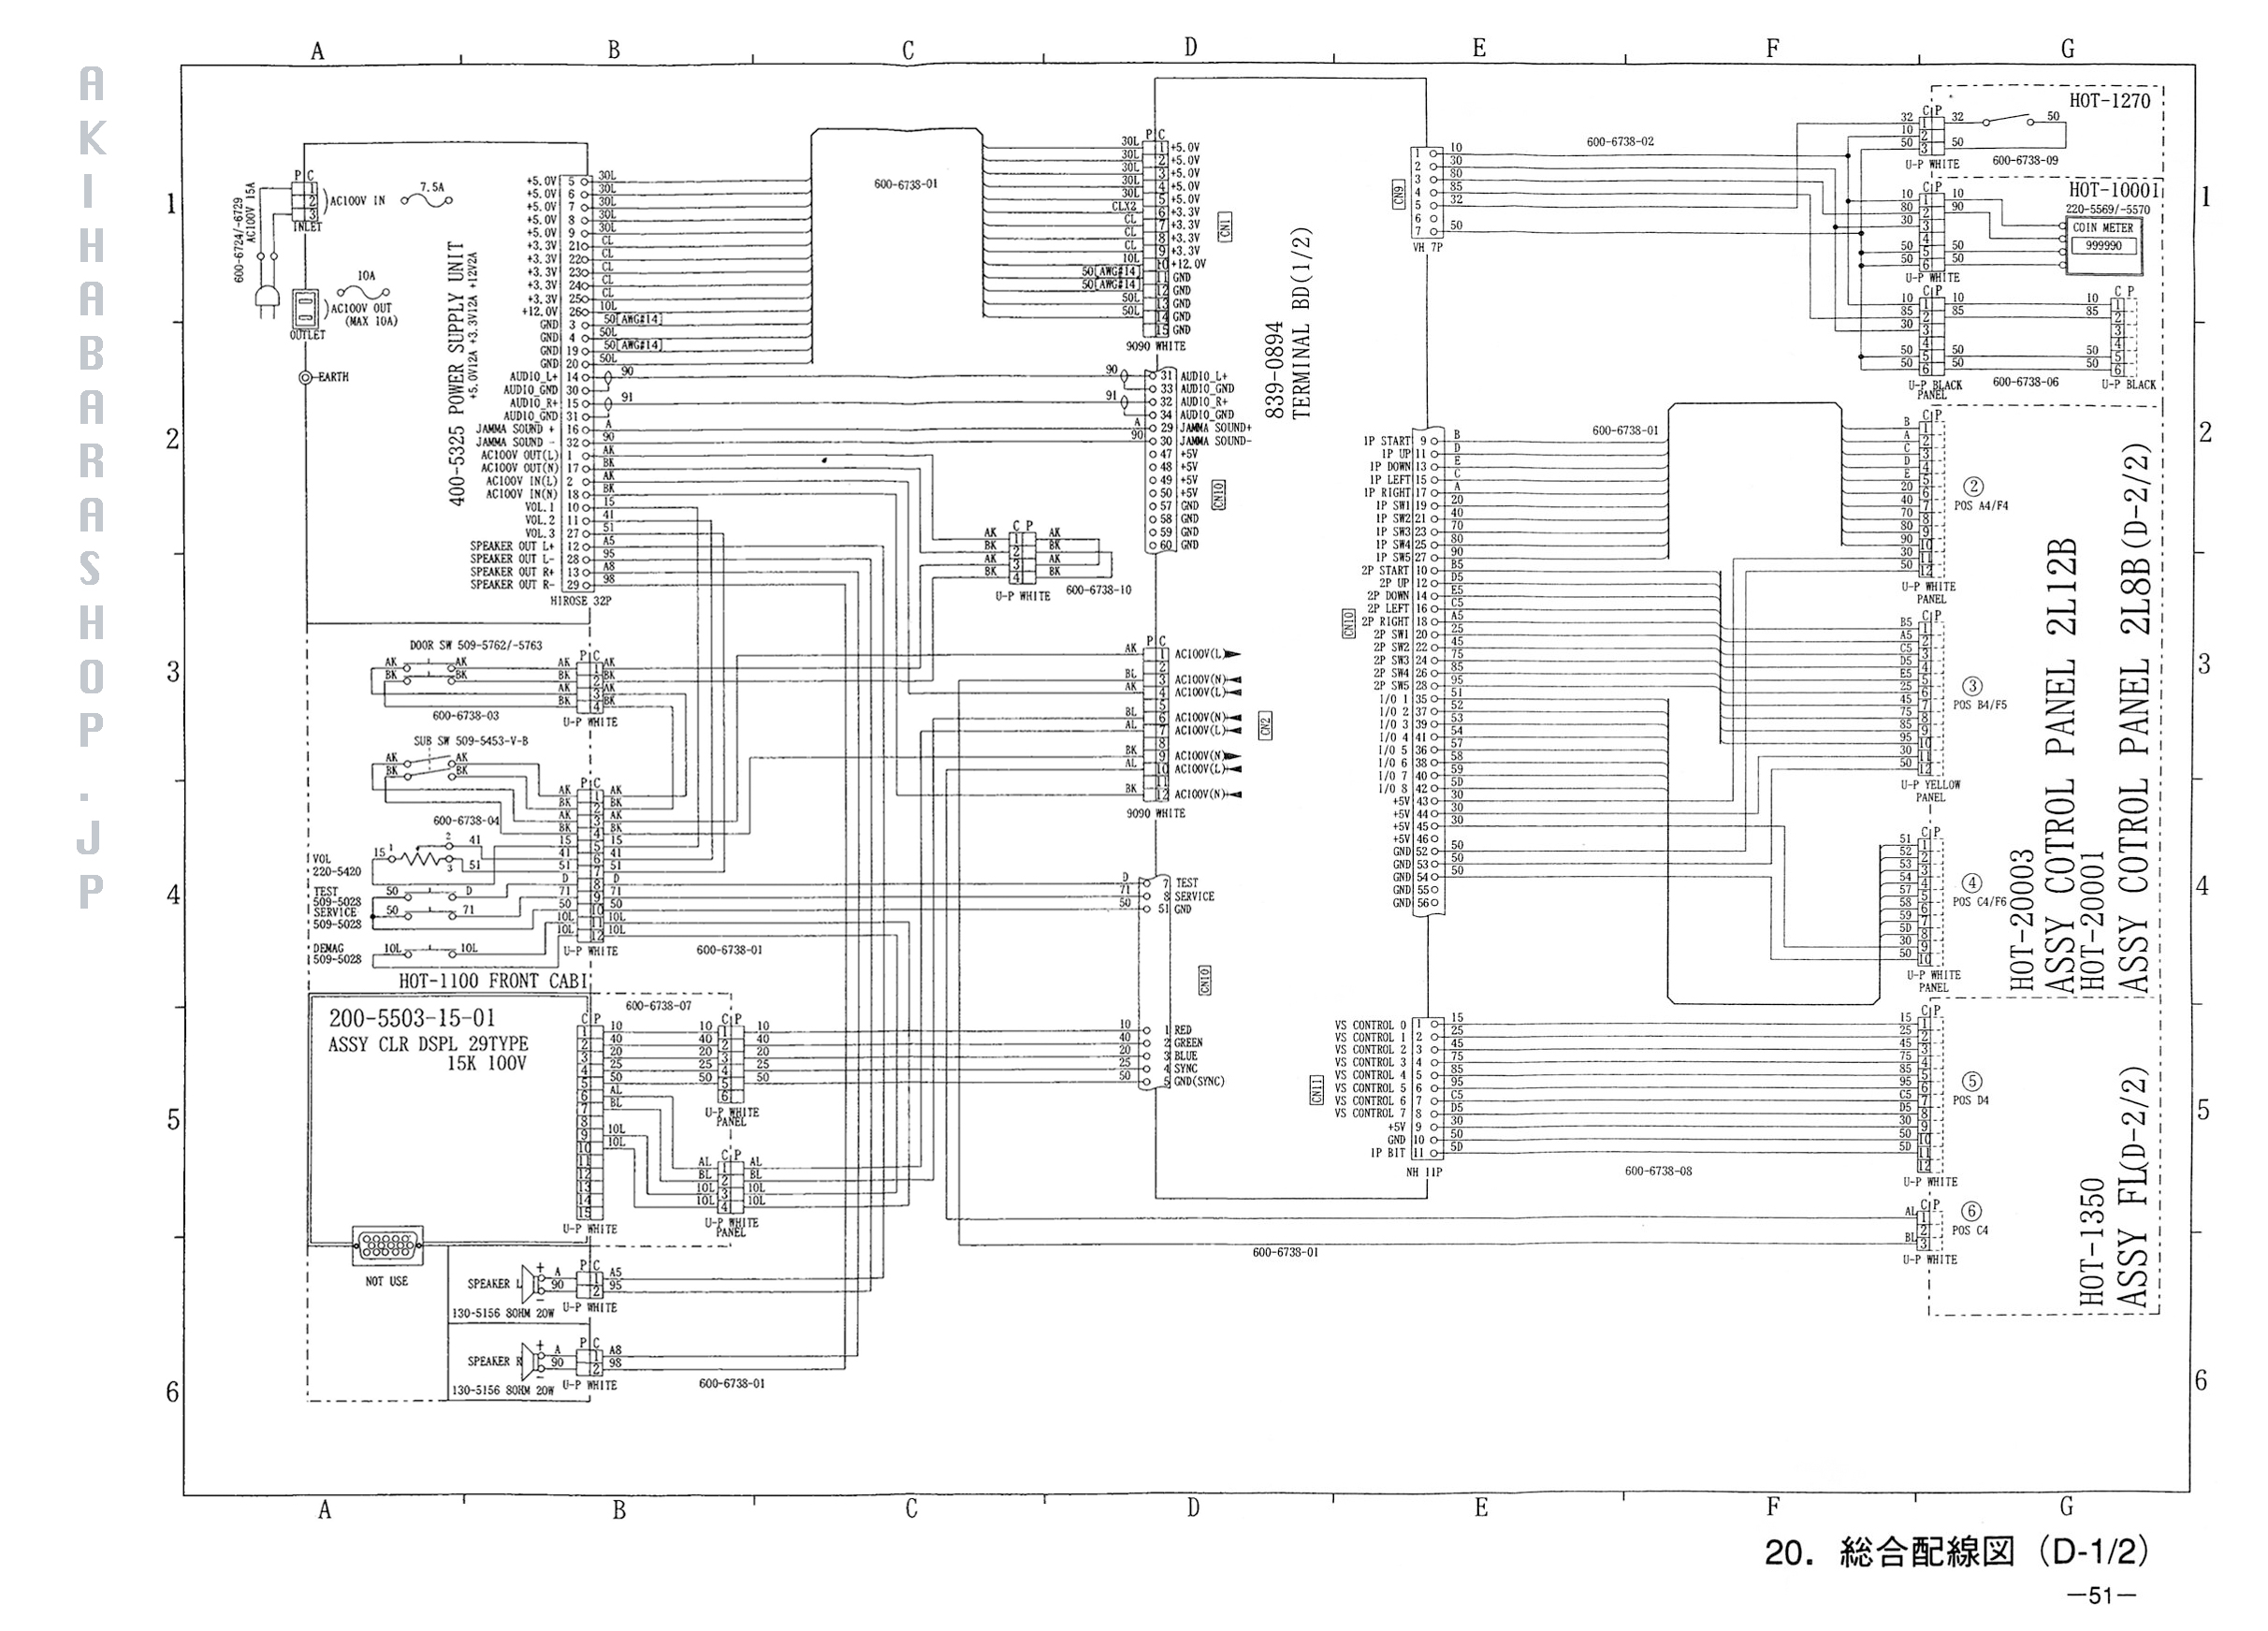 SegaBlastCityWiring2 sega blast city arcade otaku wiki Theatre Diagram at aneh.co